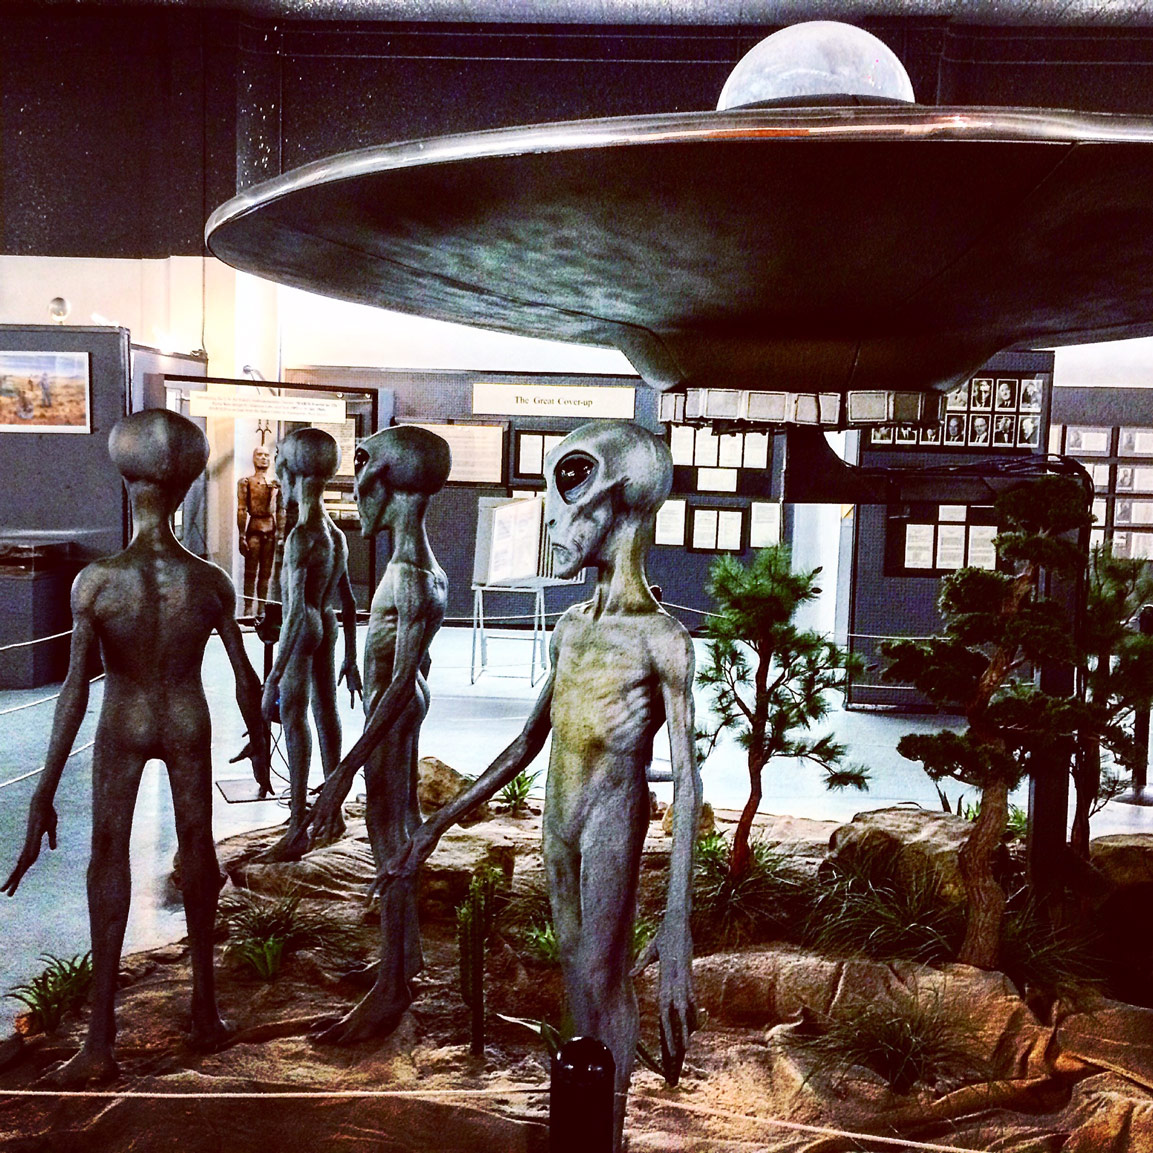 roswell, new mexico, ufo crash site, 1947, conspiracy, government cover up, area 51, aliens, extraterrestrials, International UFO Museum And Research Center